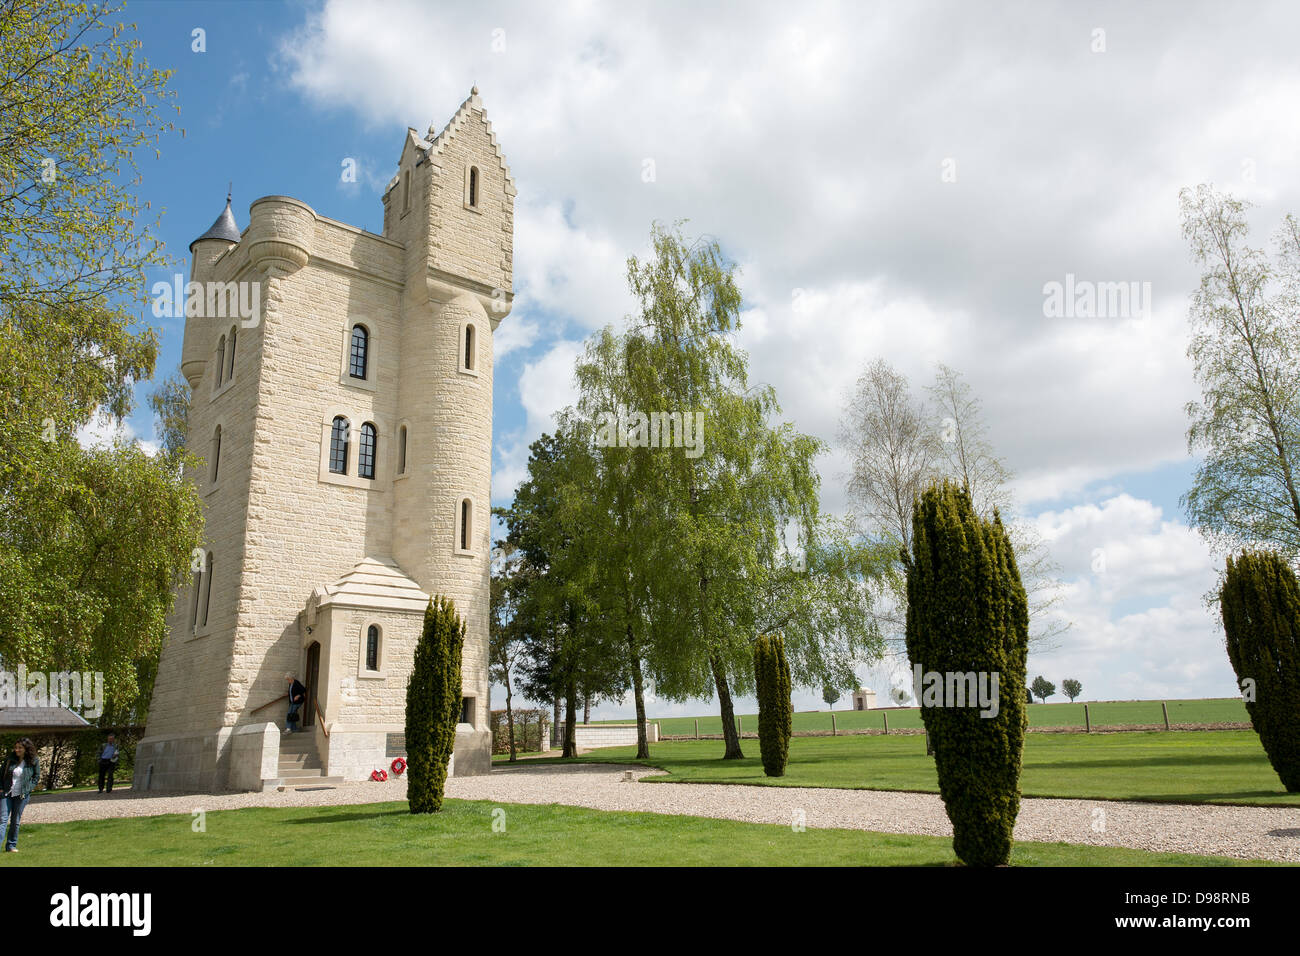 The Ulster Tower the First World War memorial to the 36th Ulster Division - Stock Image